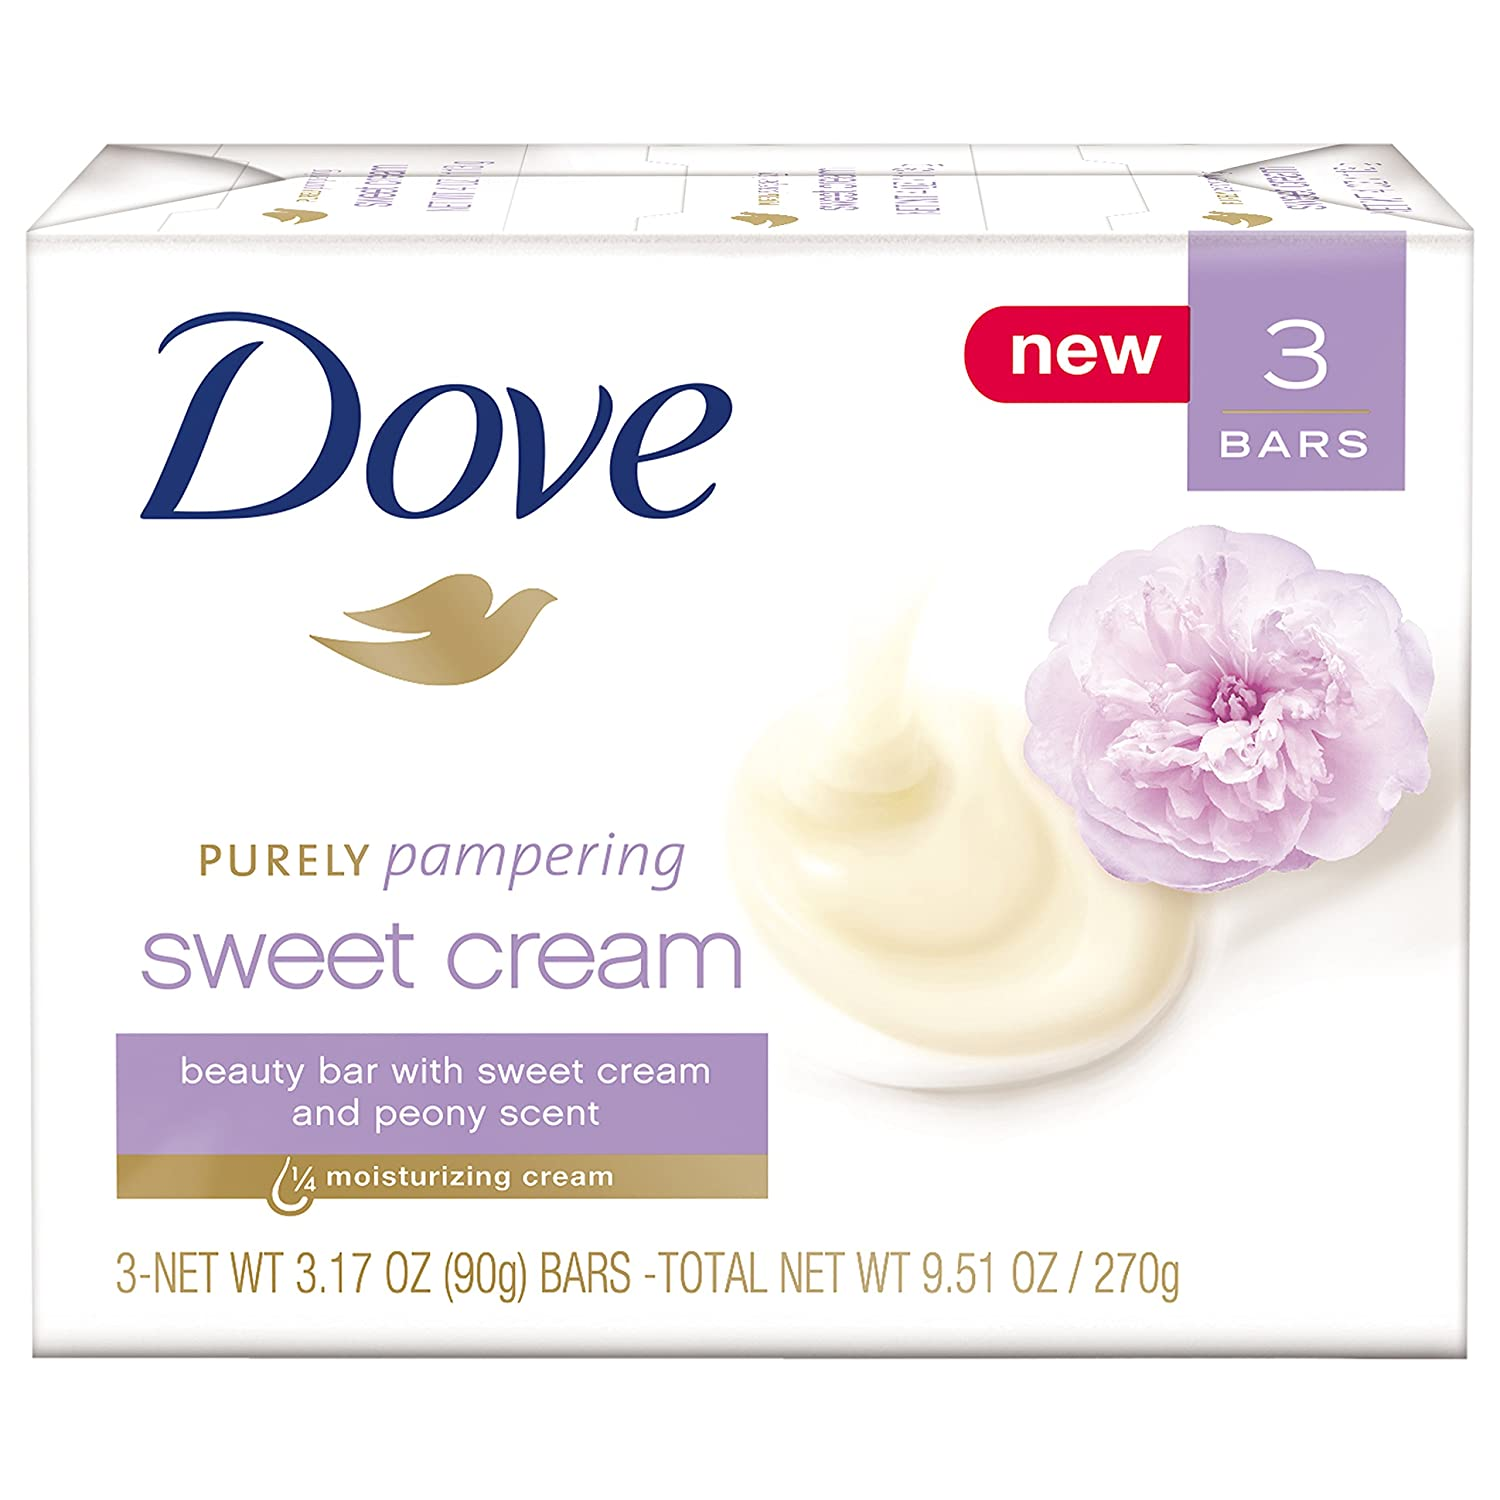 Dove Purely Pampering Beauty Bar, Sweet Cream & Peony, 3.17 oz, 3 Bar